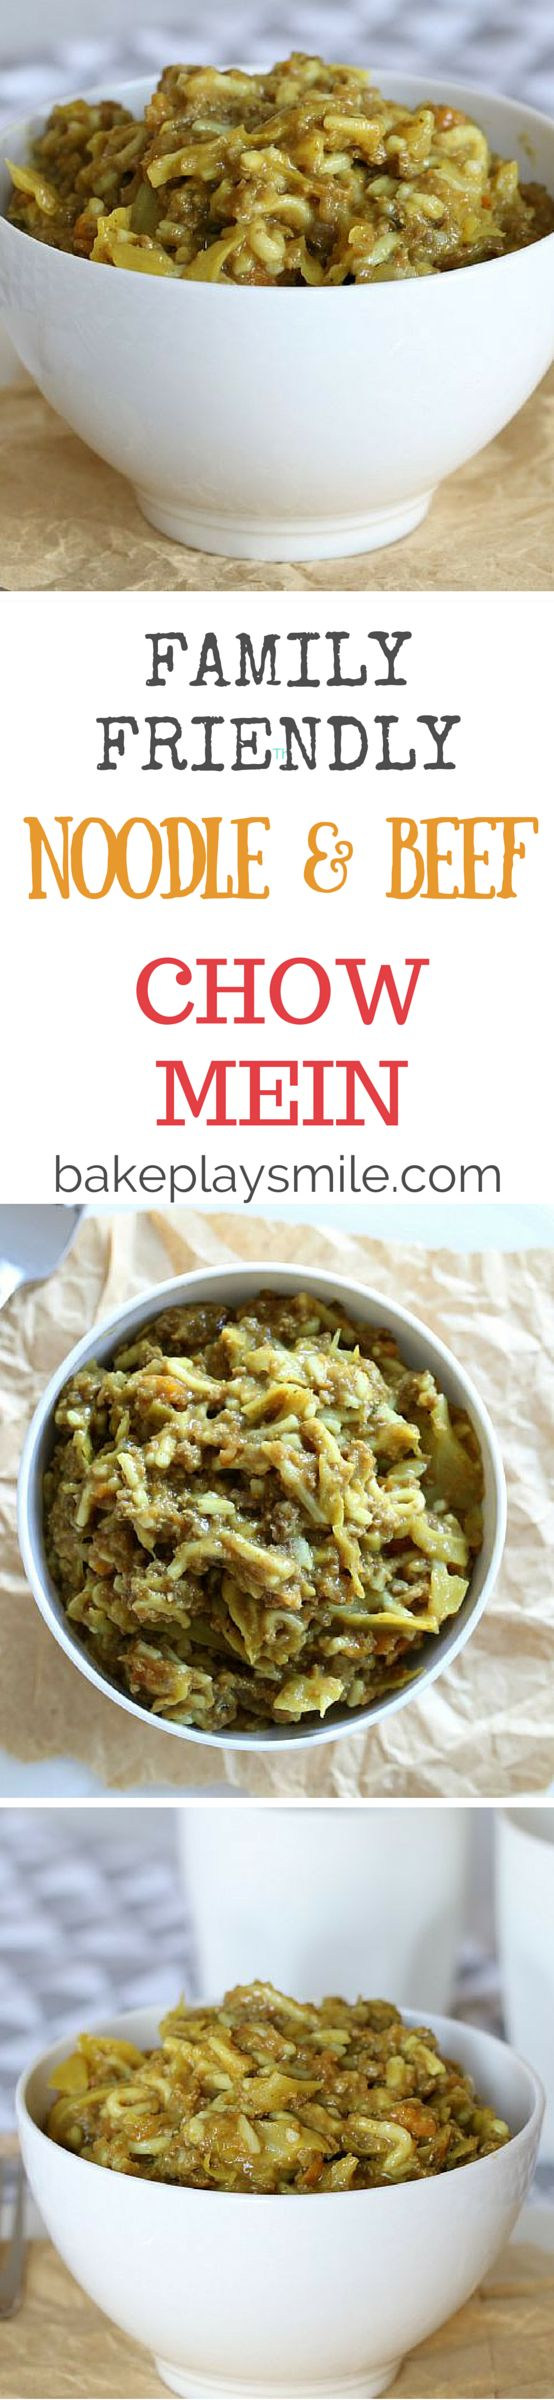 This is one of the most popular budget-friendly recipes on the entire website! It's quick, it's easy and it's really yummy! Who doesn't love Beef Chow Mein with Noodles? #easy #dinner #recipe #budget #chow #mein